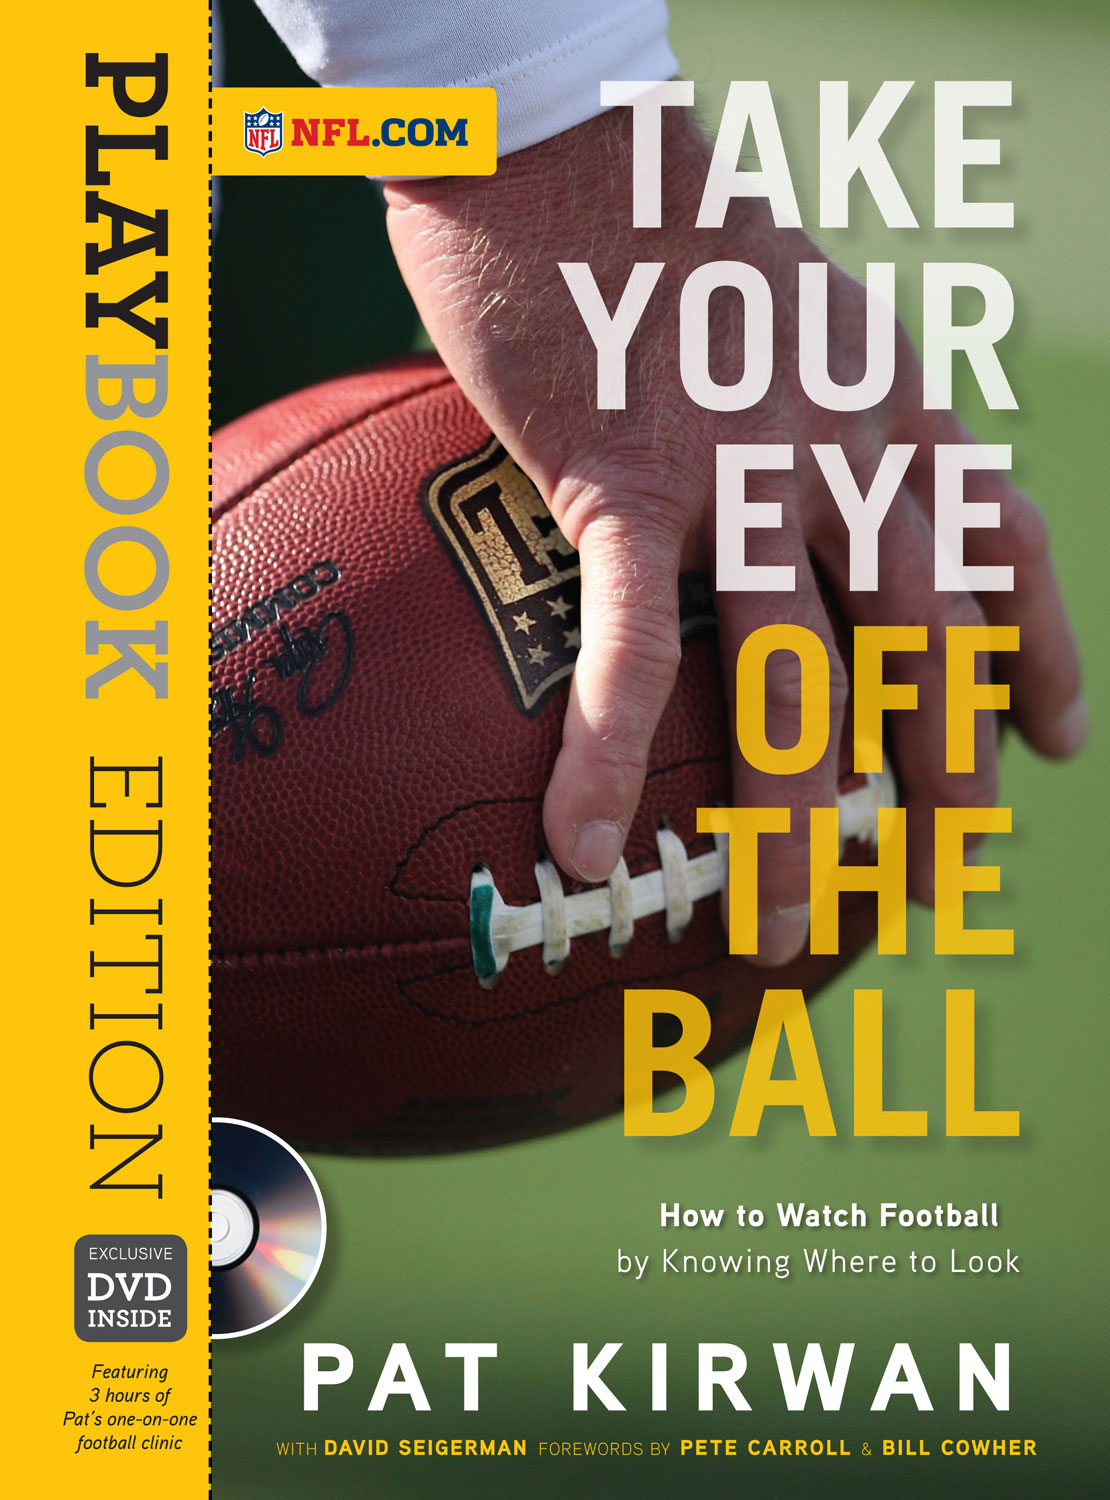 Take Your Eye Off the Ball: How to Watch Football by Knowing Where to Look By: David Seigerman,Pat Kirwan